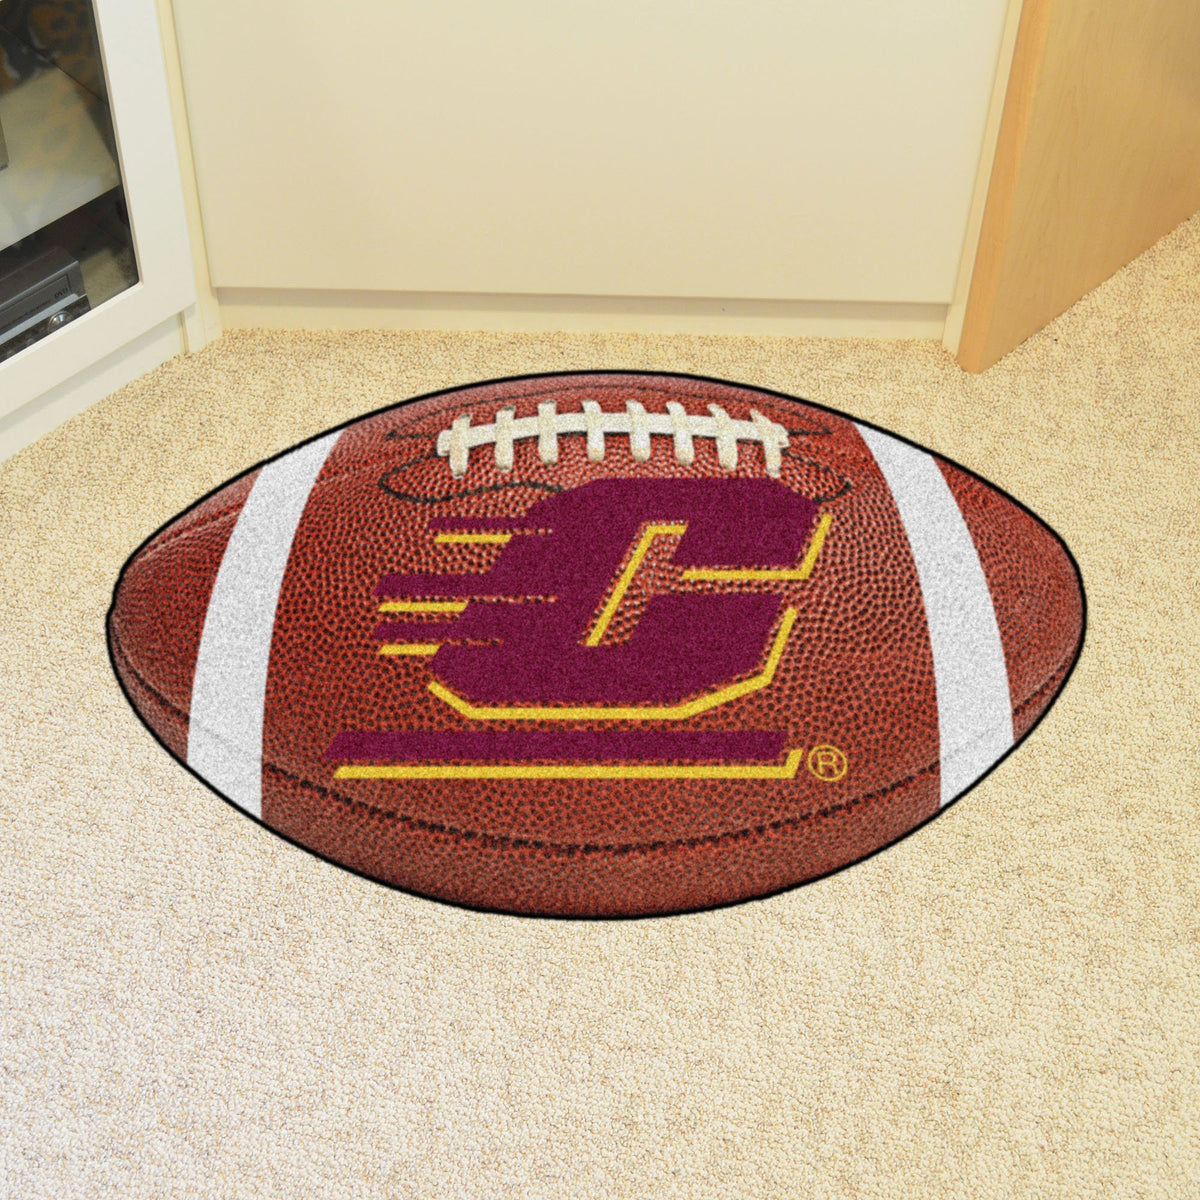 Collegiate - Football Mat: A - K Collegiate Mats, Rectangular Mats, Football Mat, Collegiate, Home Fan Mats Central Michigan